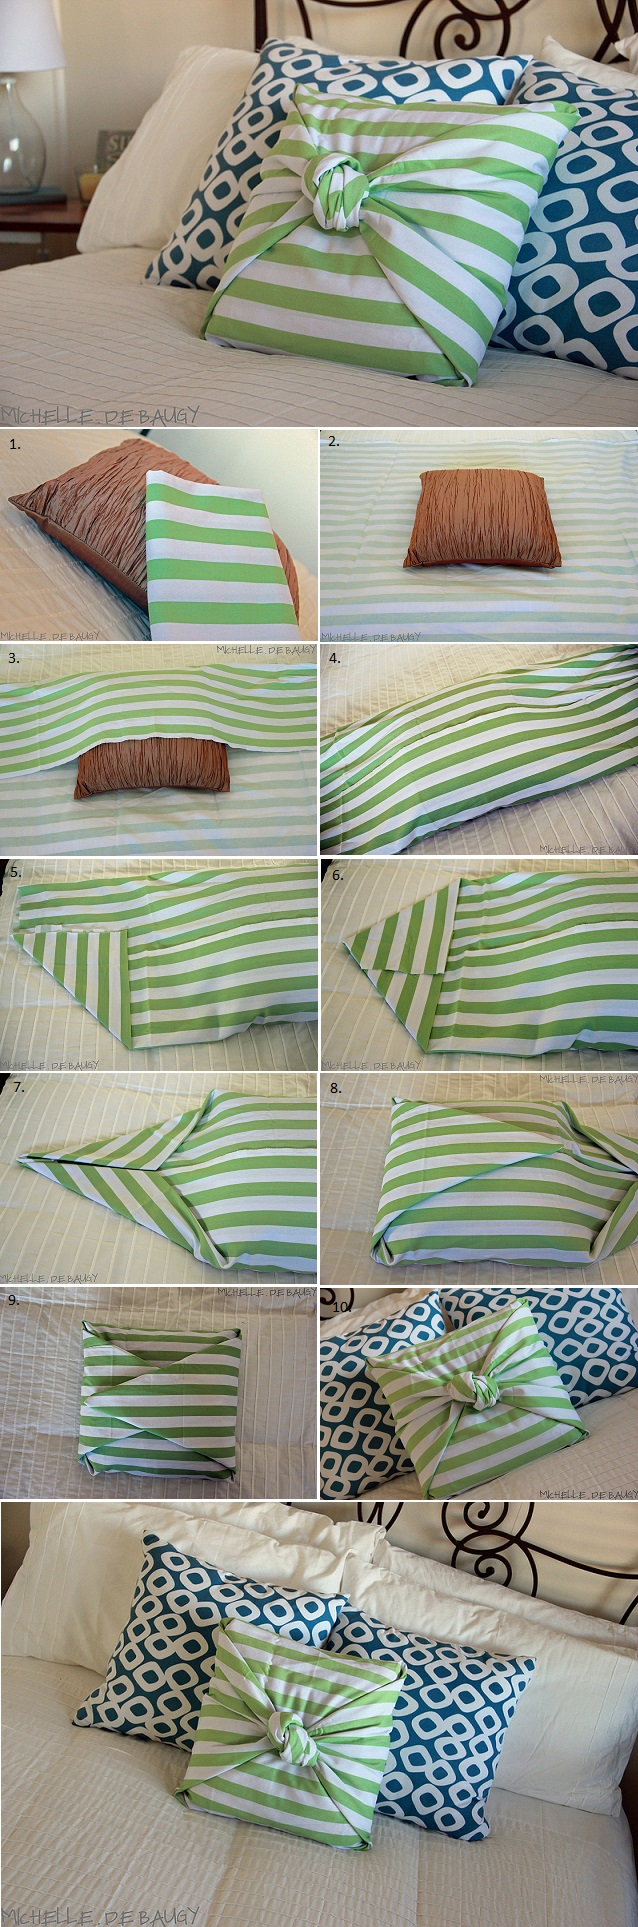 Diy Throw Pillow Cover No Sew : No Sew Pillow Case - DIY - AllDayChic